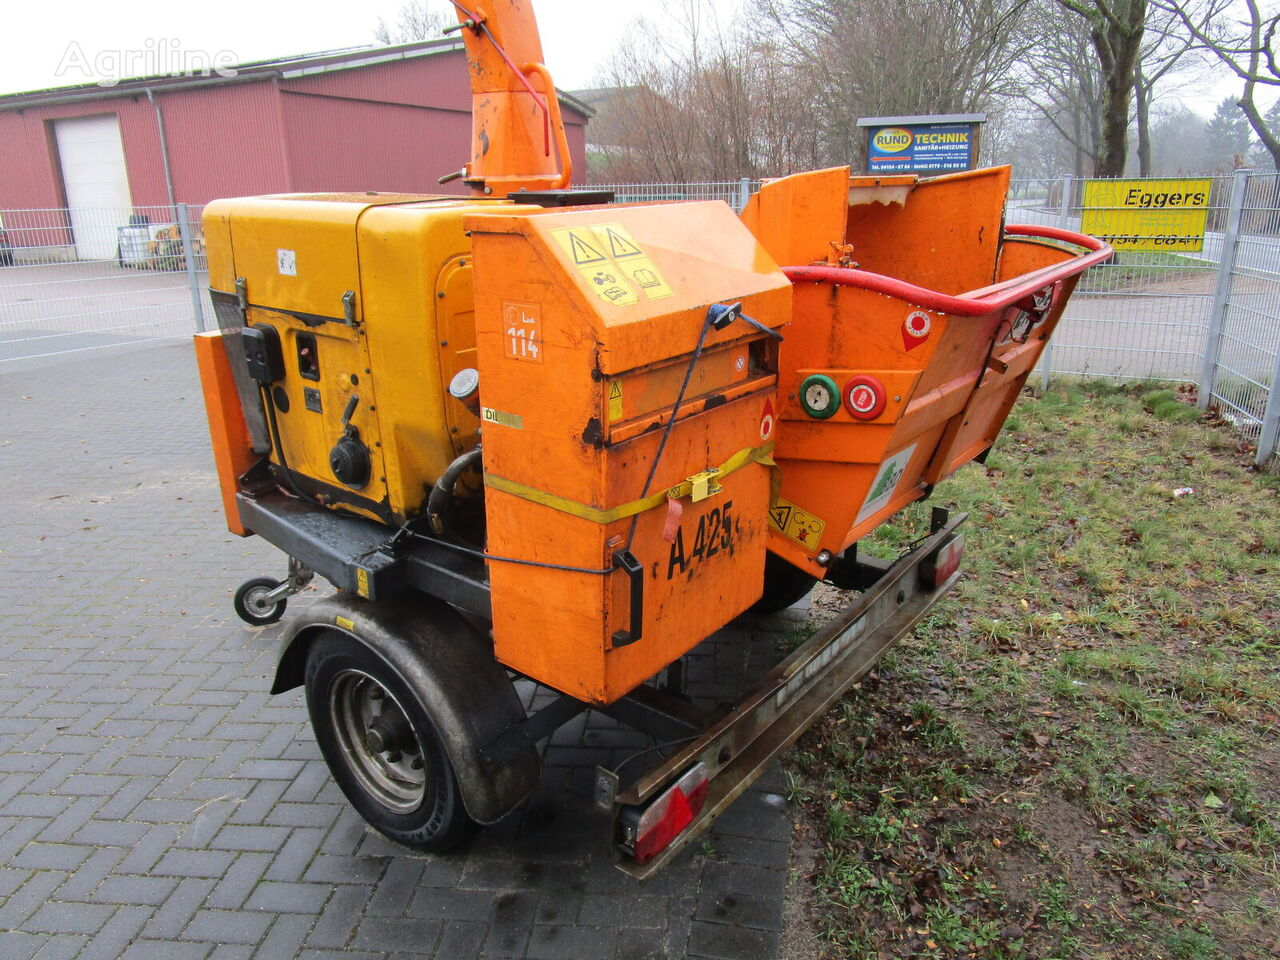 JENSEN A425DI wood chipper